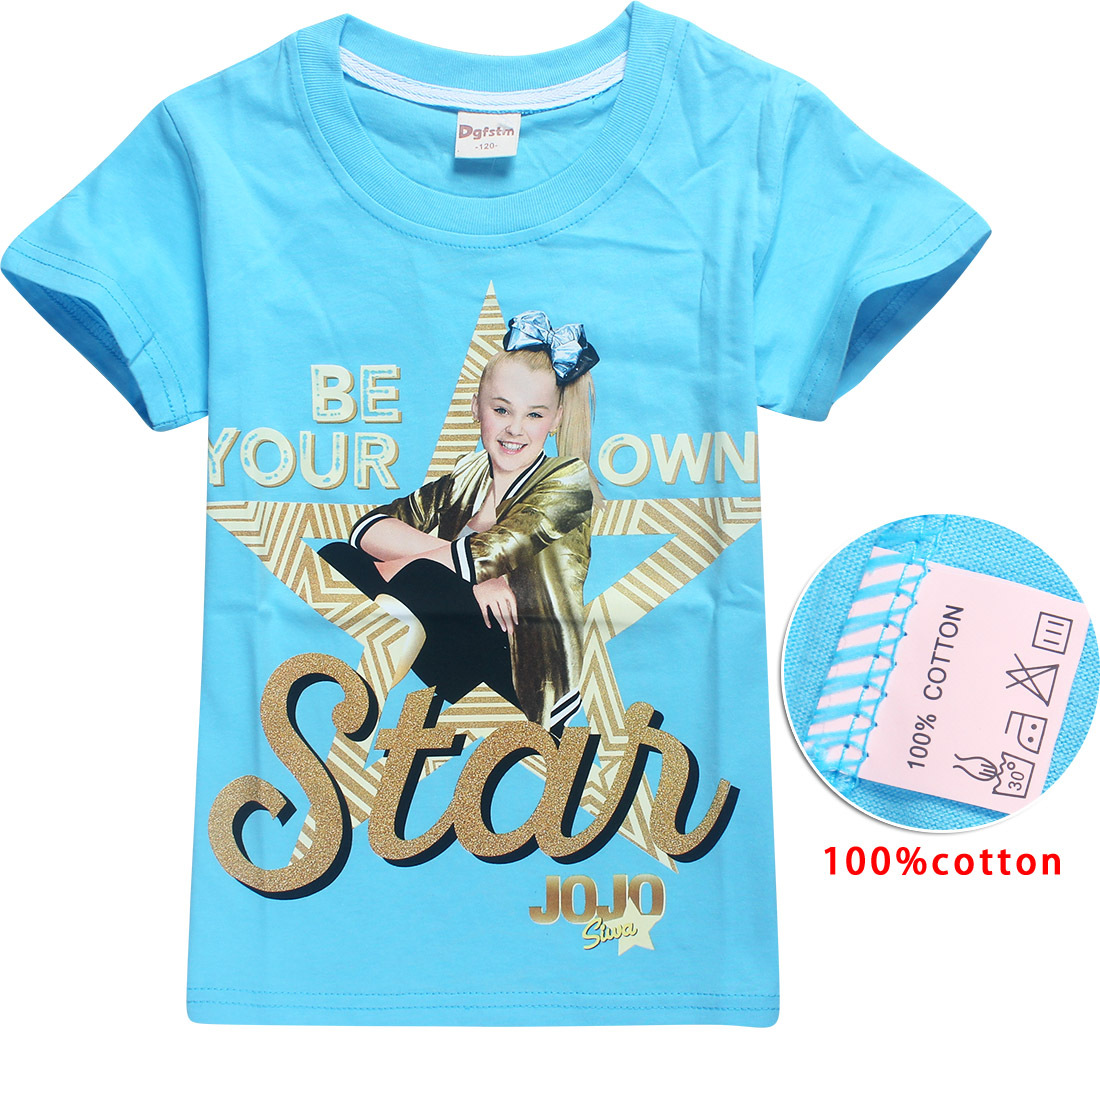 JOJO SIWA 100% Cotton T Shirts for Kids 2018 Summer Baby Girls Tops Tees + Hair  Bows Toddler Moana Trolls Kids Clothes 6 14y-in Tees from Mother   Kids on  ... f66d2db3e537